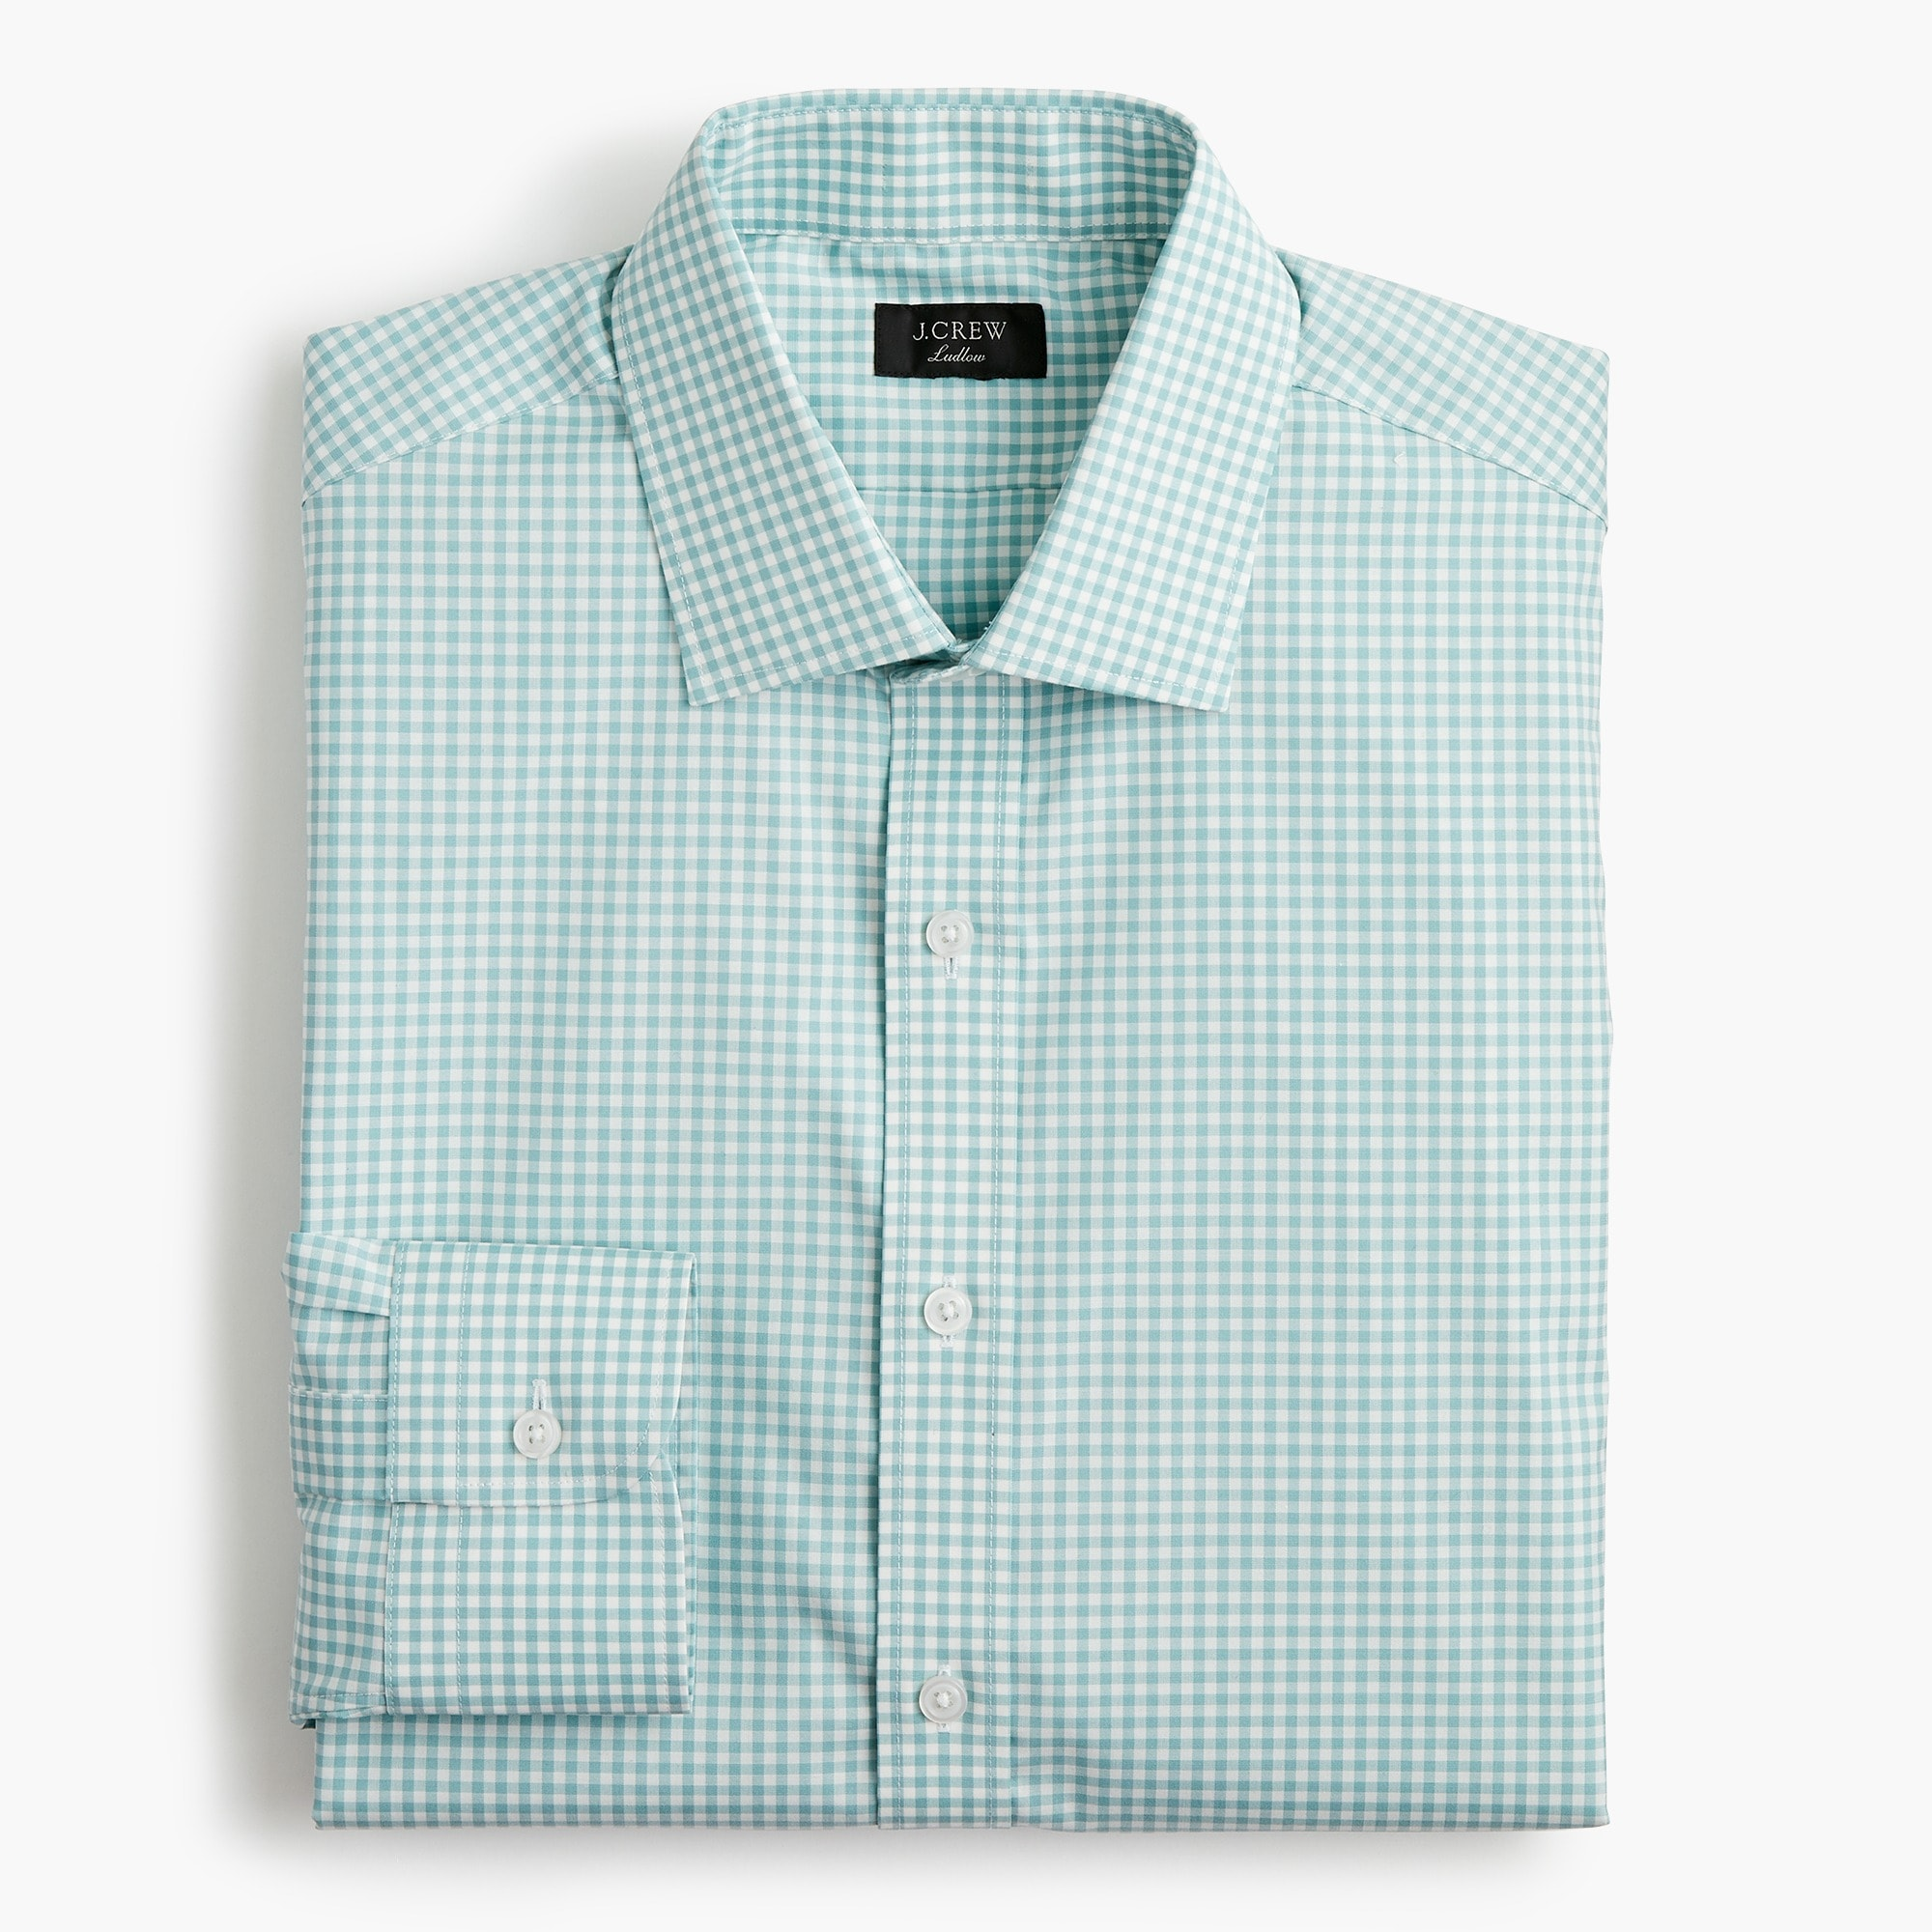 mens Ludlow Slim-fit stretch two-ply easy-care cotton dress shirt in aqua gingham